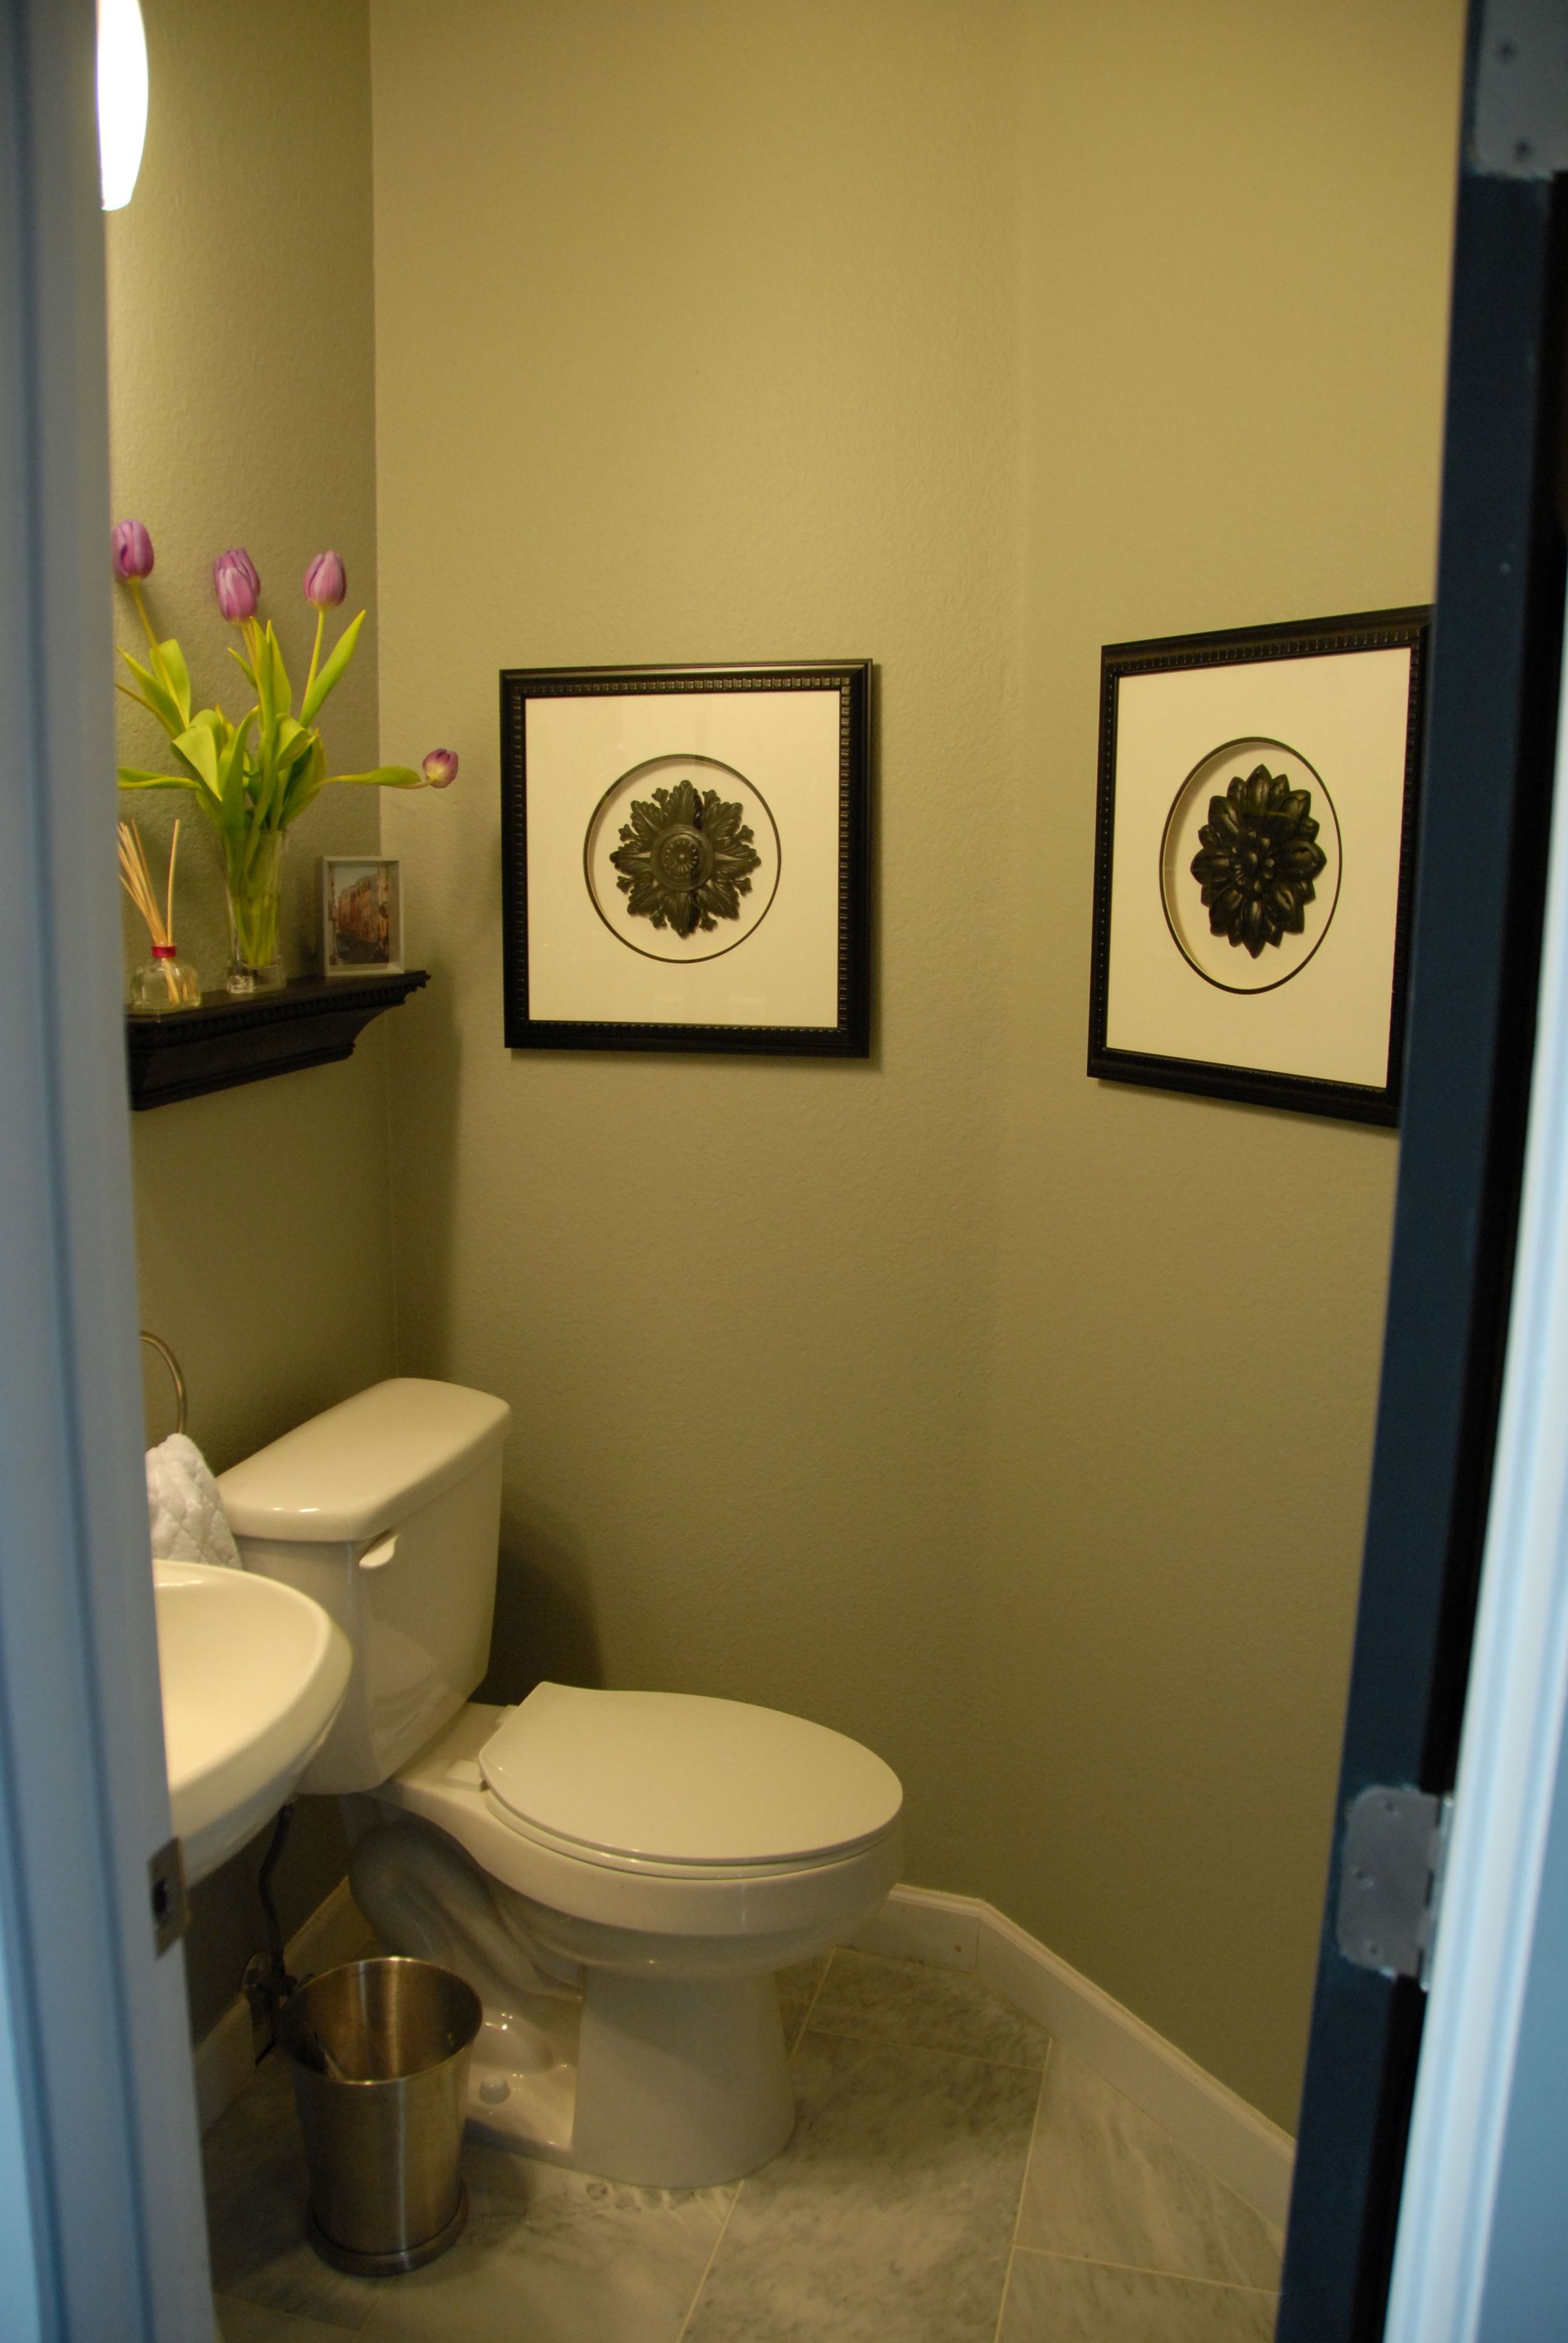 After - Our beautiful little bathroom